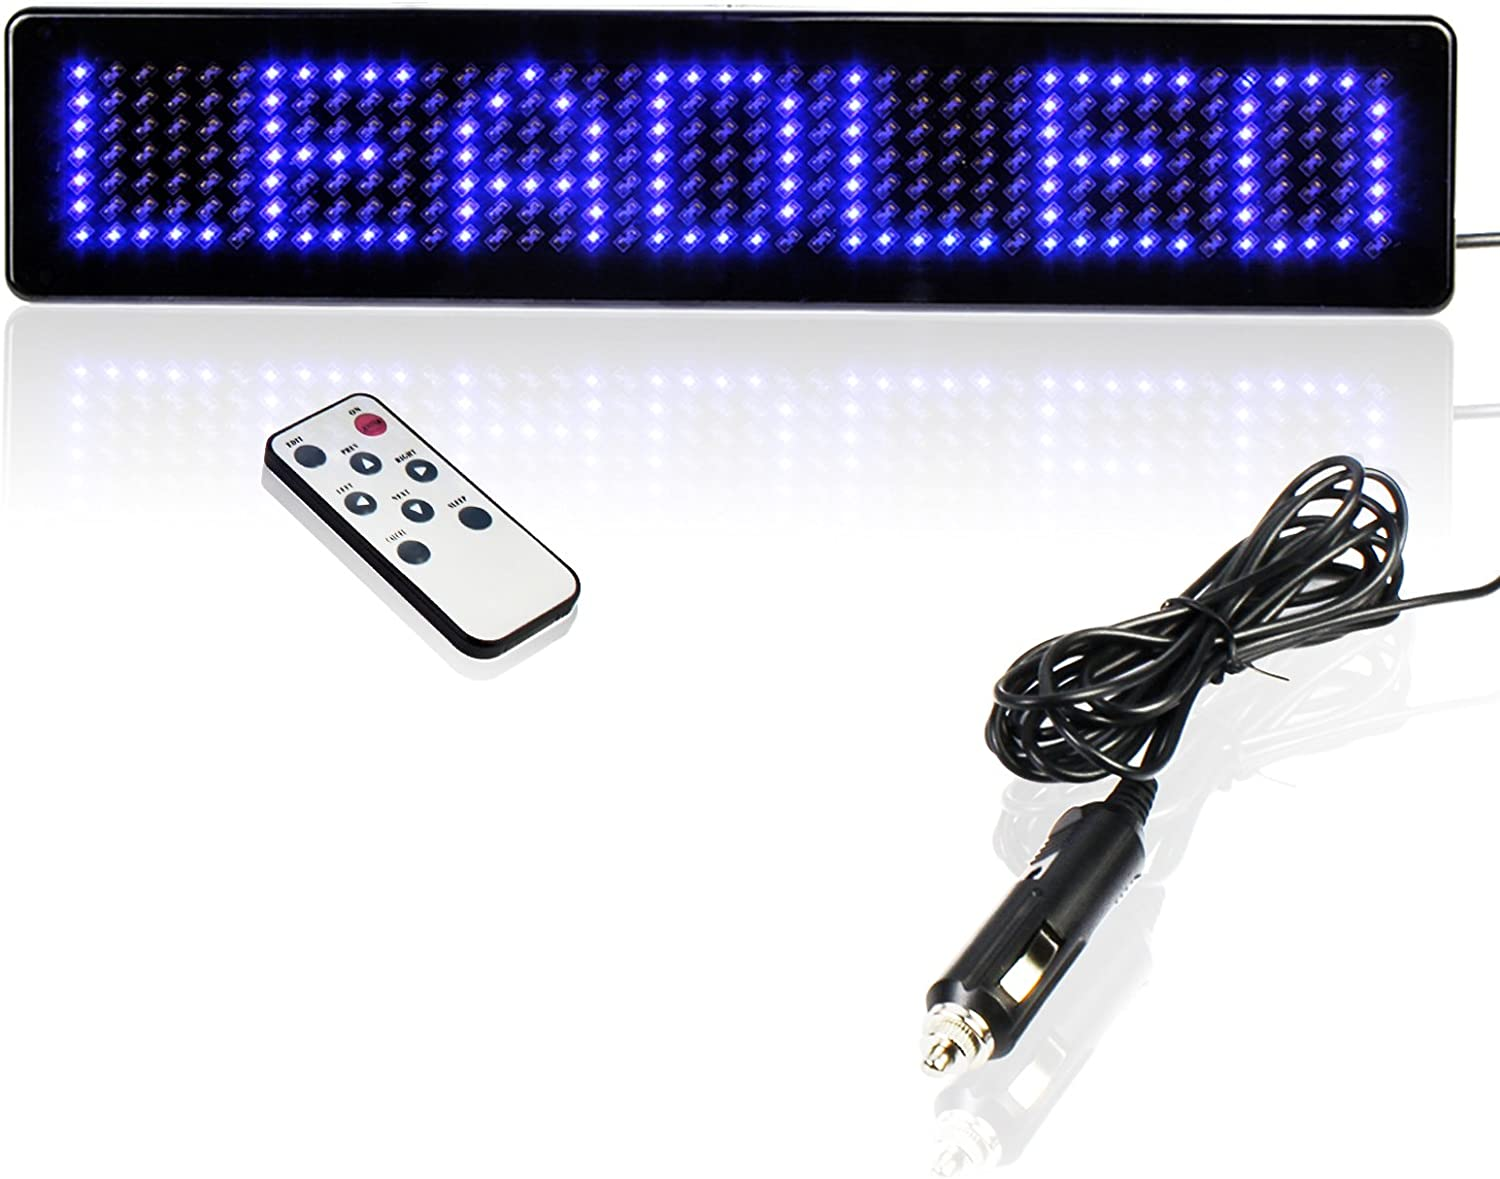 Leadleds Remote Led Programmable Sign Driving Lights for Cars/motorcycle/bicycle/vehicle, By Remote Program English, European Characters, Number, Punctuation, Symbol, Easy Program (Blue)